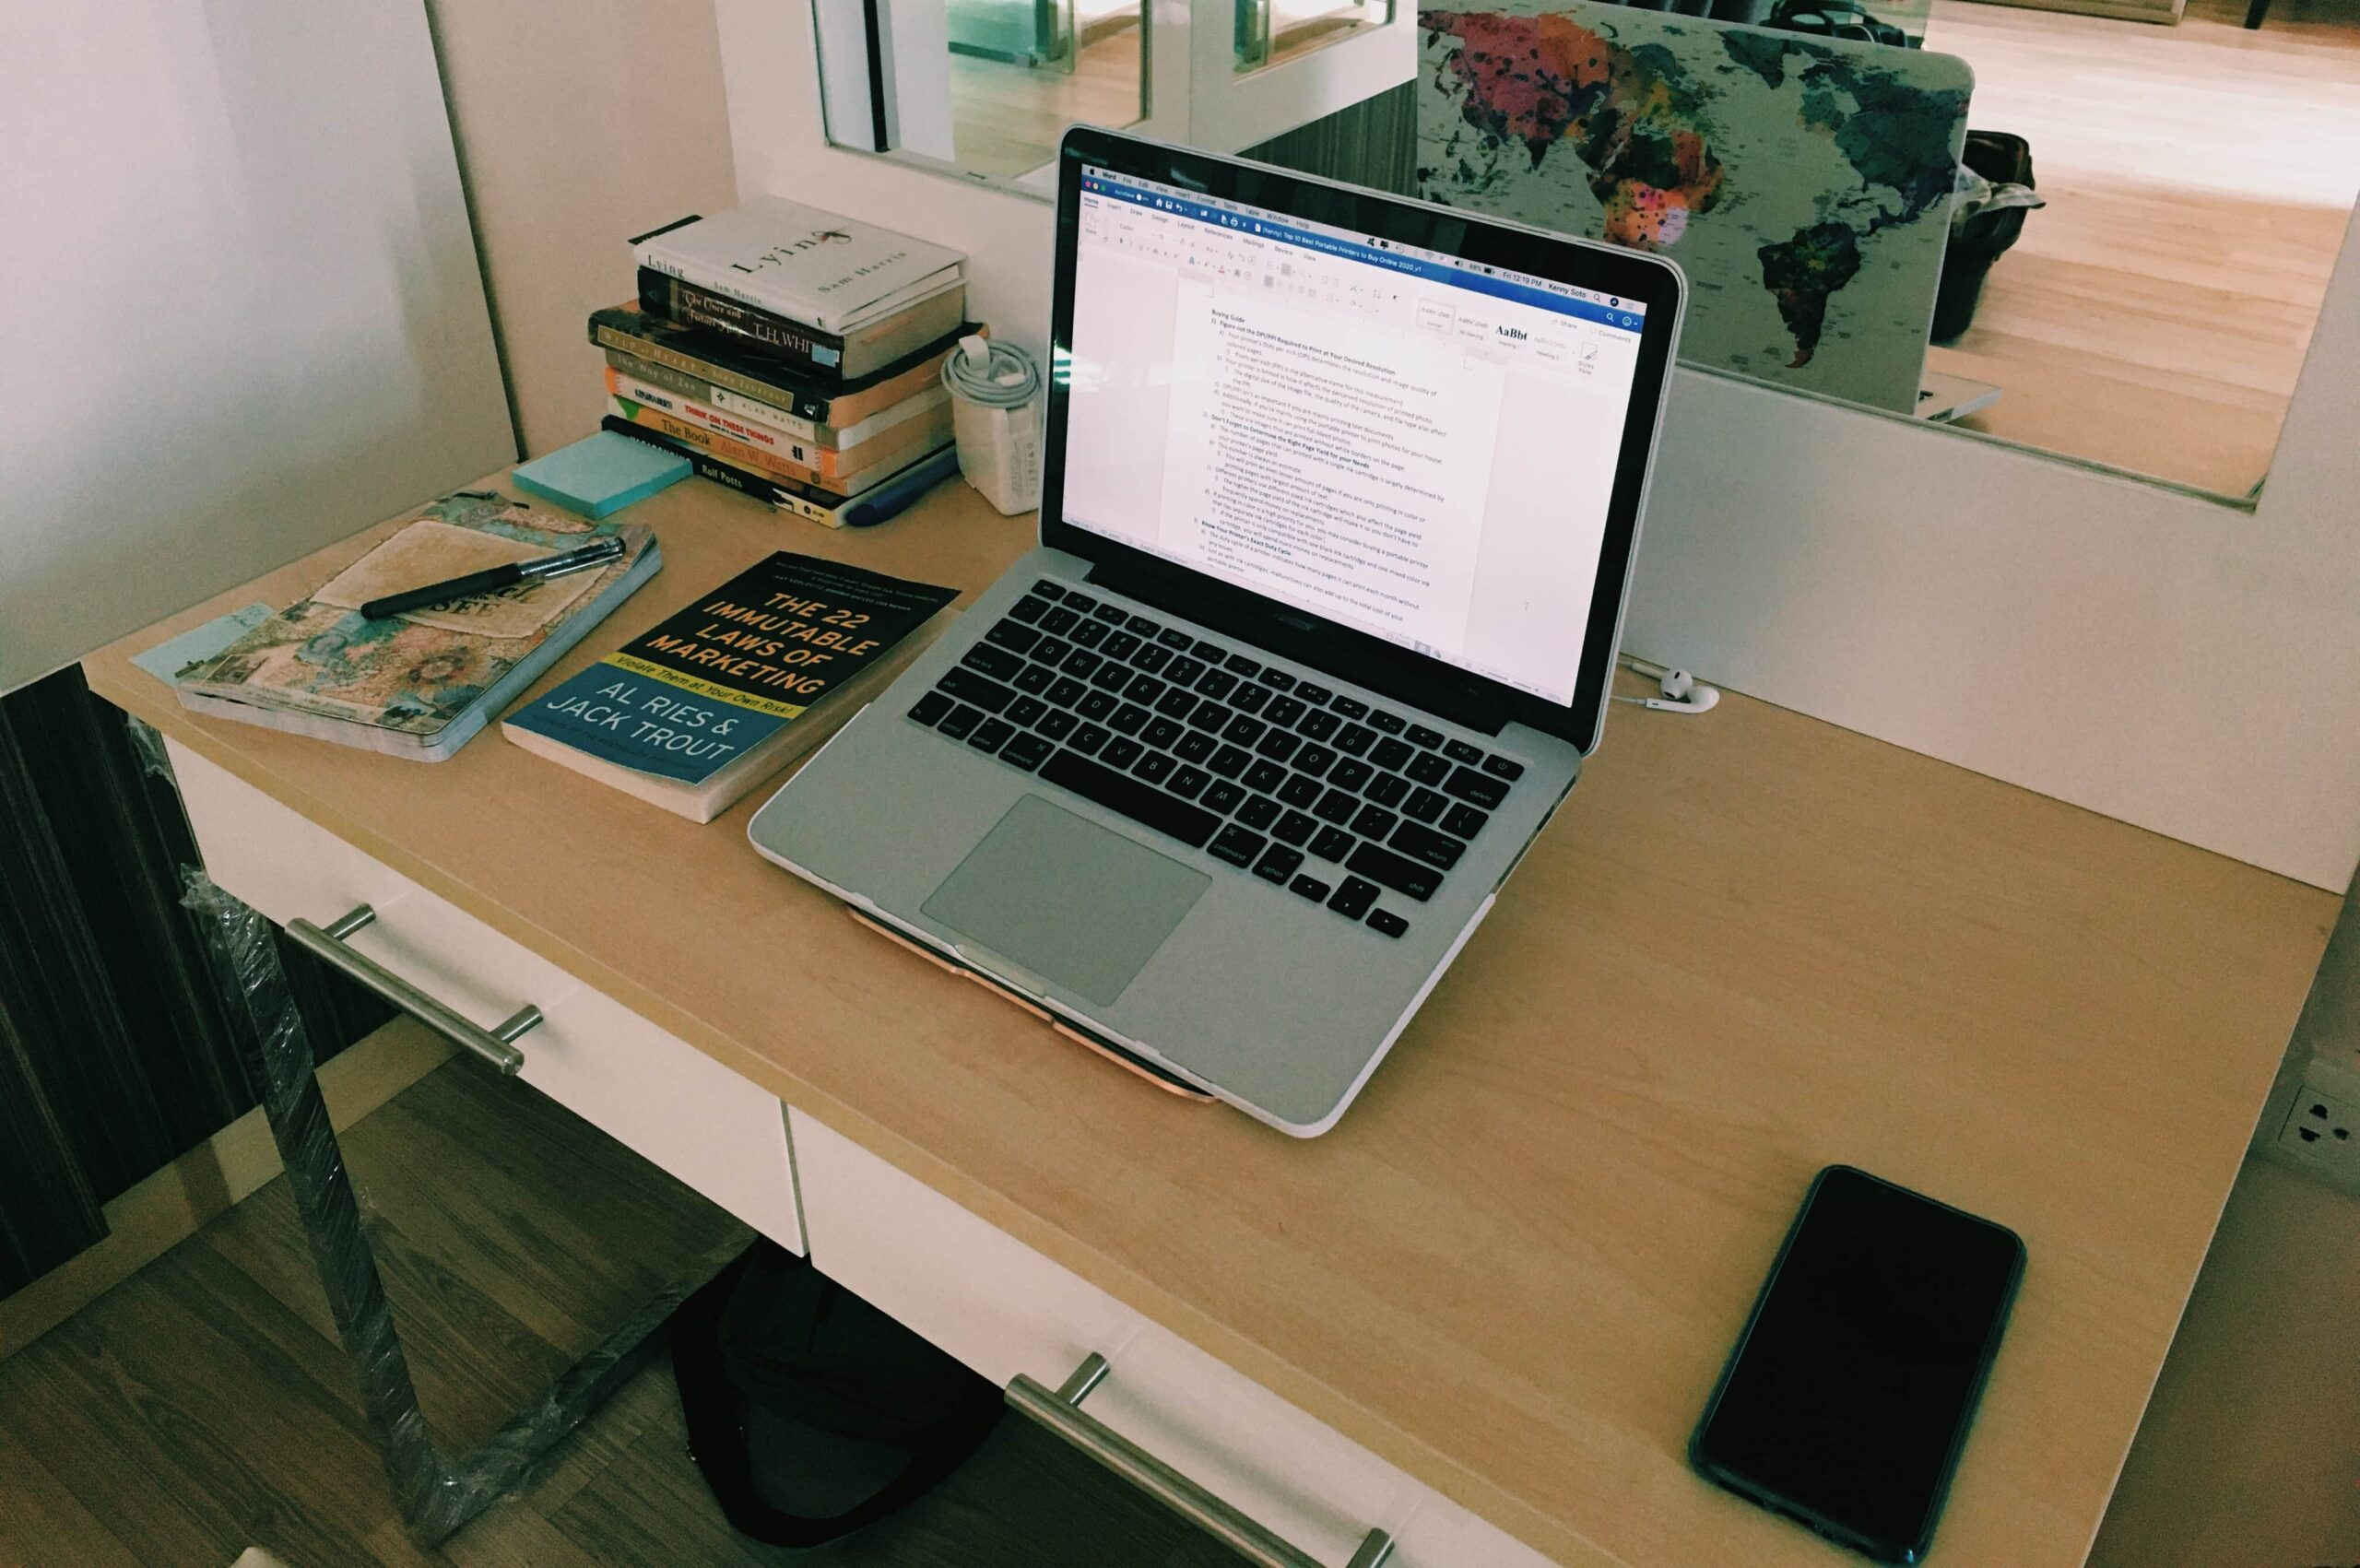 How-To-Get-Remote-Work-As-A-Writer-An-Opportunity-To-Make-Money-While-Traveling